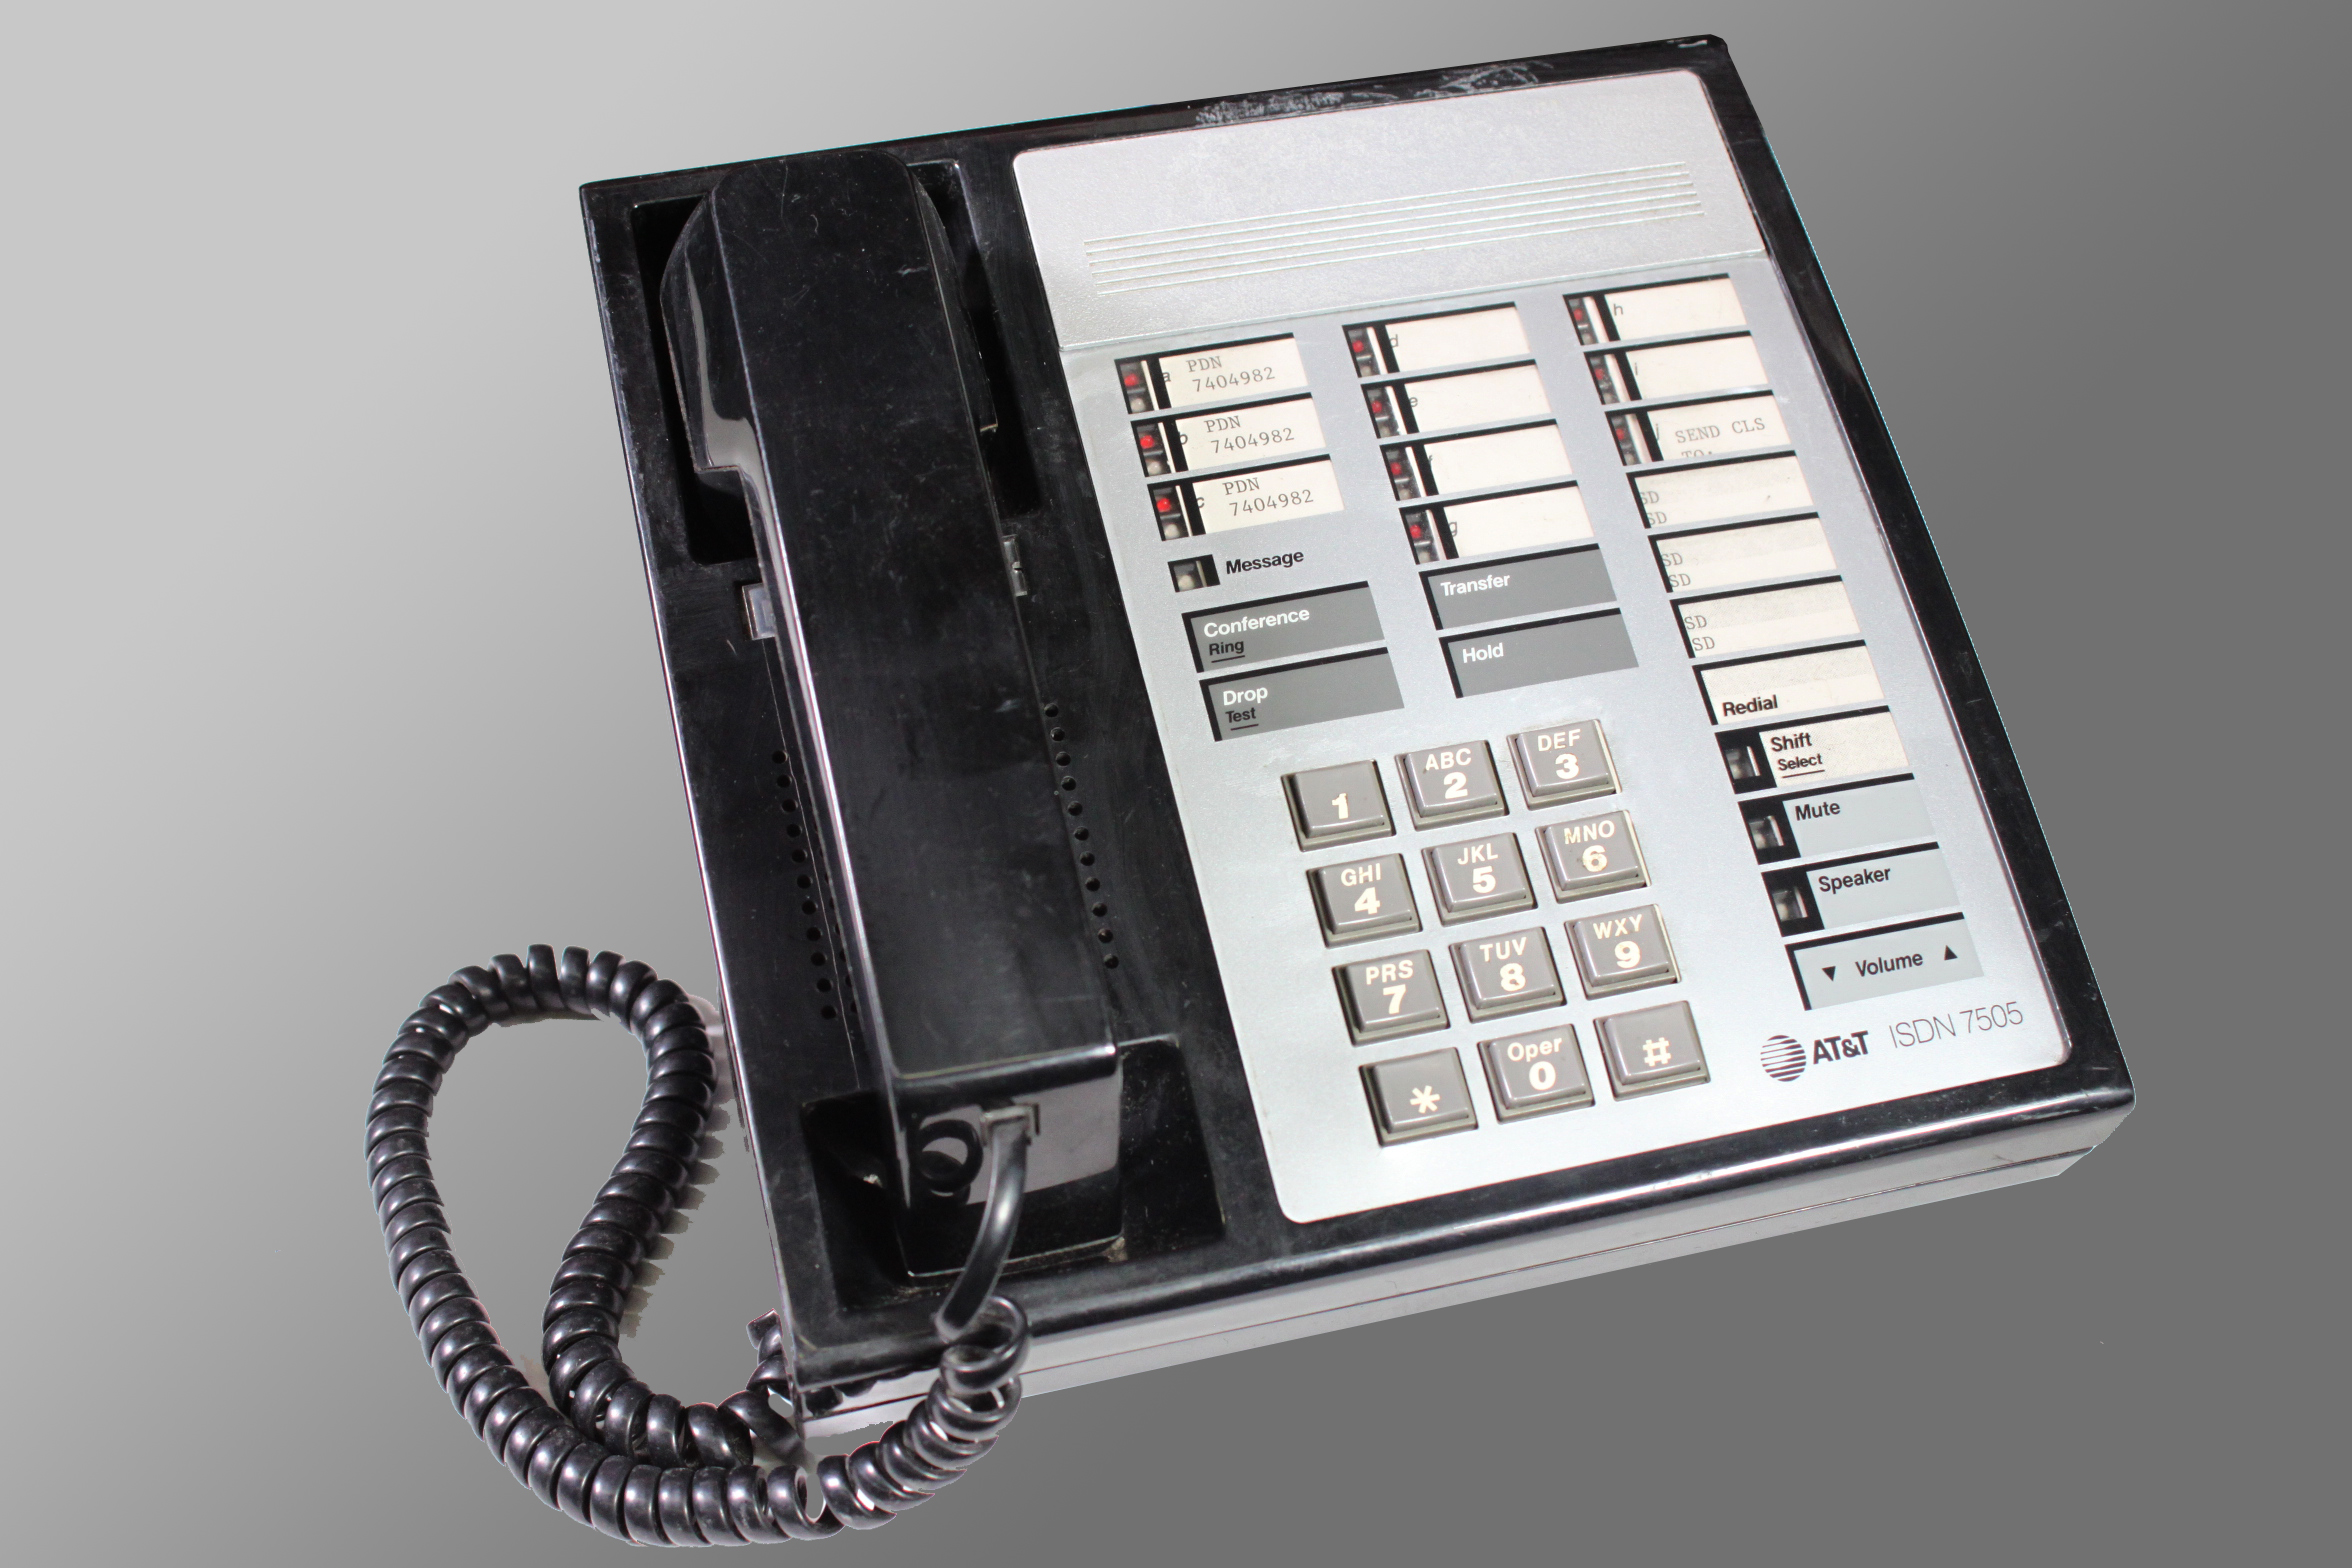 AT&T Office Phones